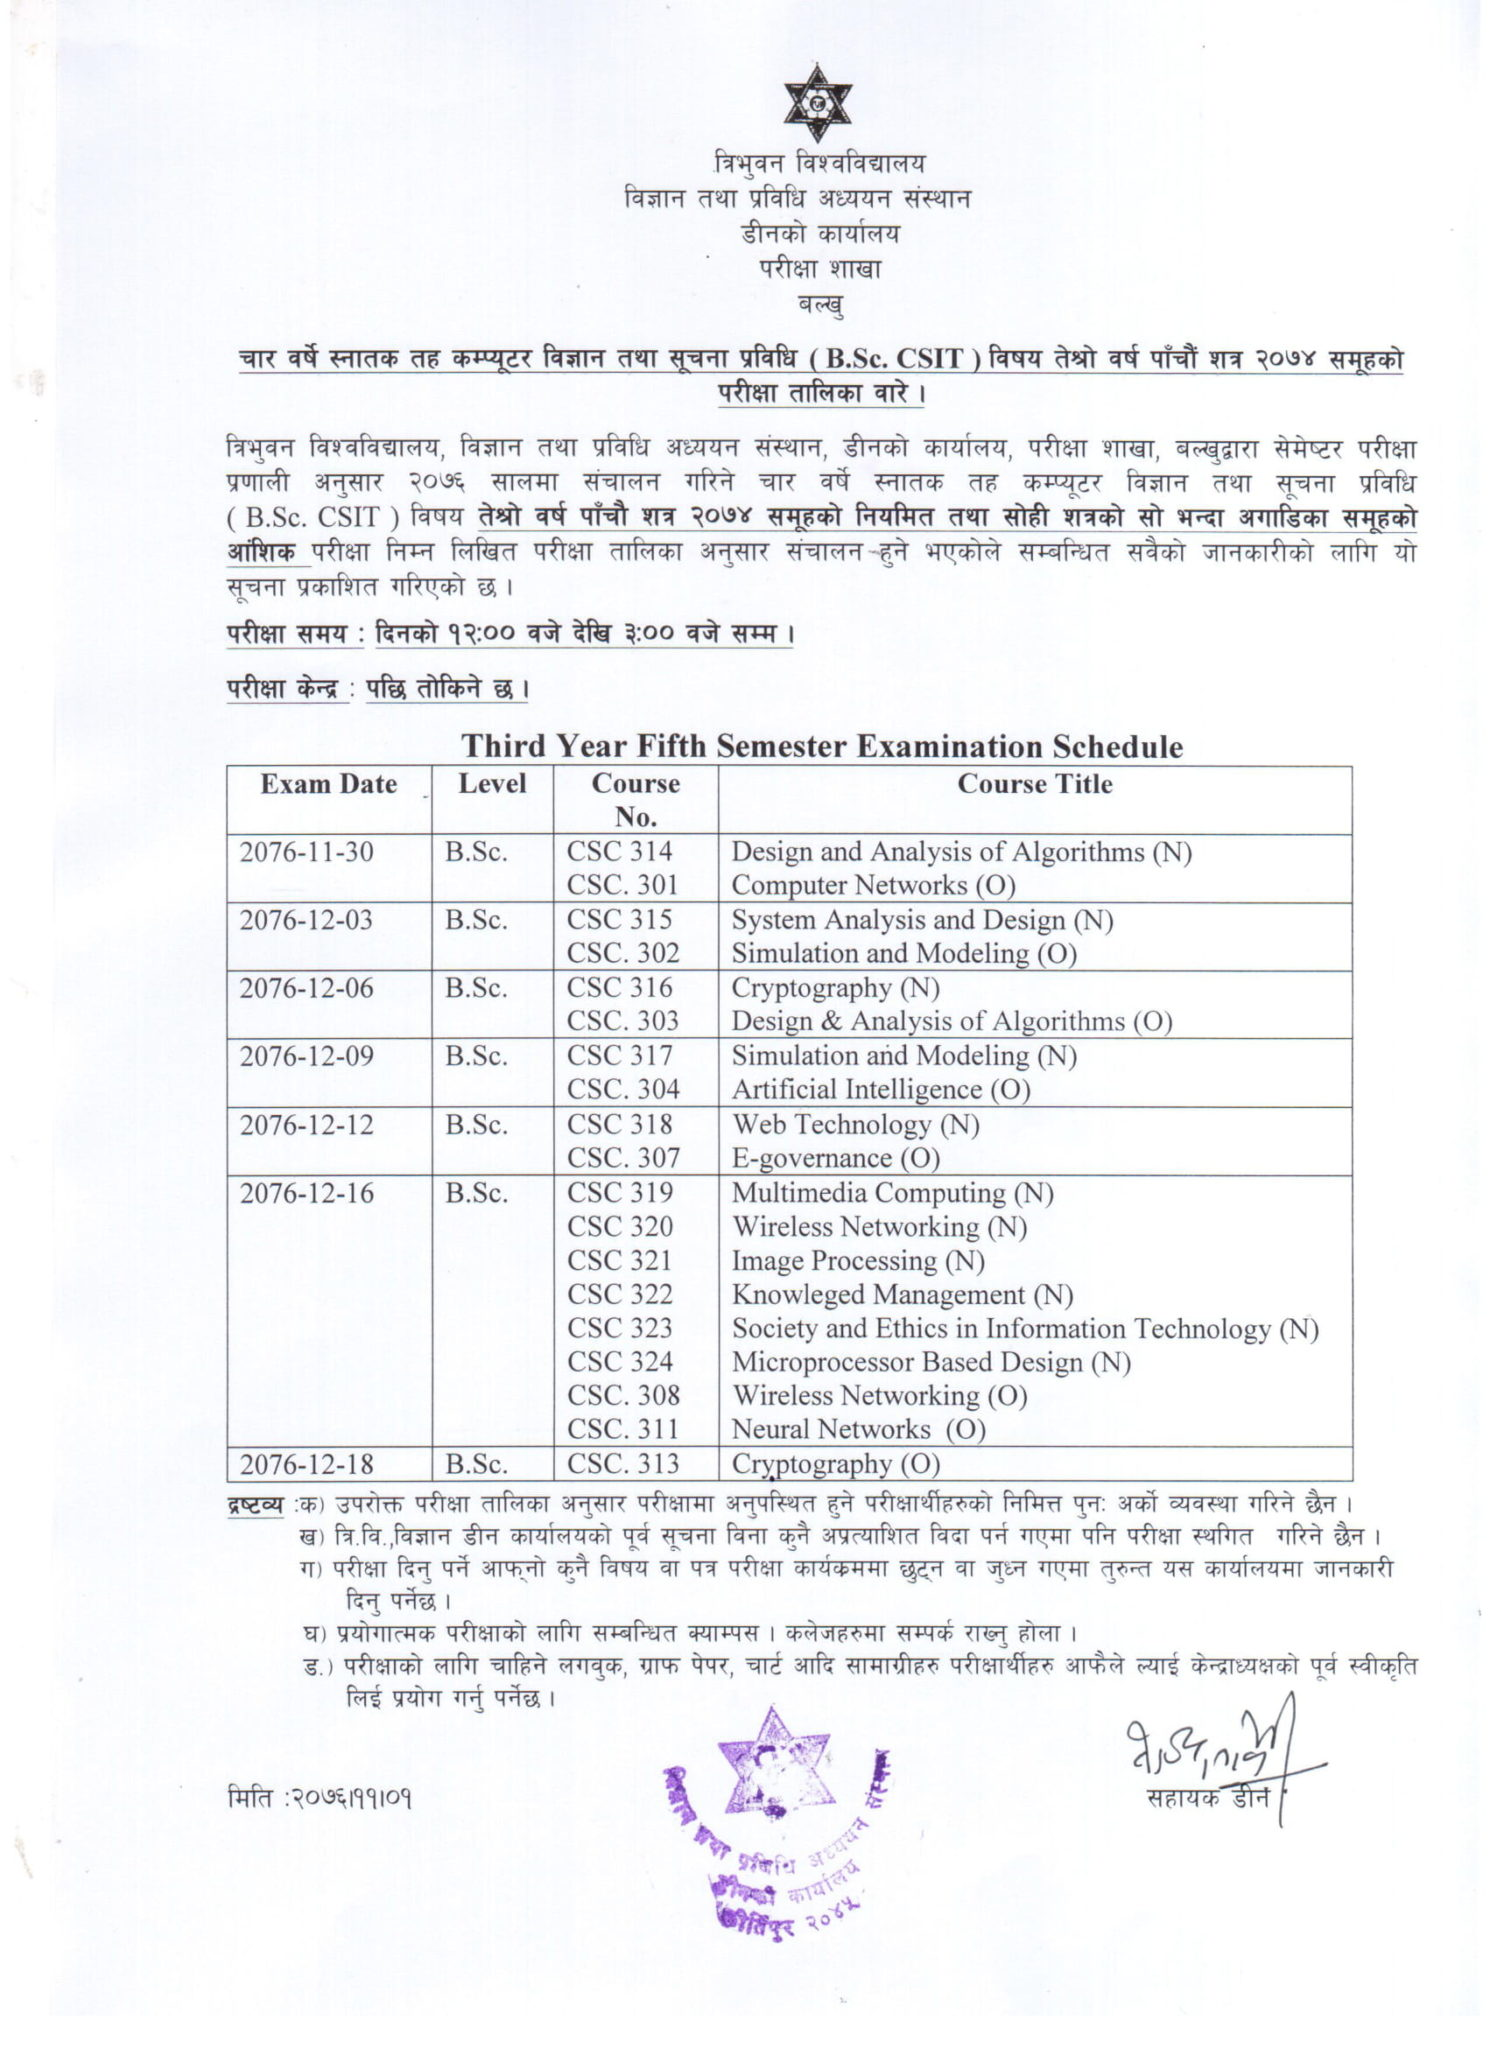 B.Sc CSIT Fifth Semester Exam Routine Published: TU